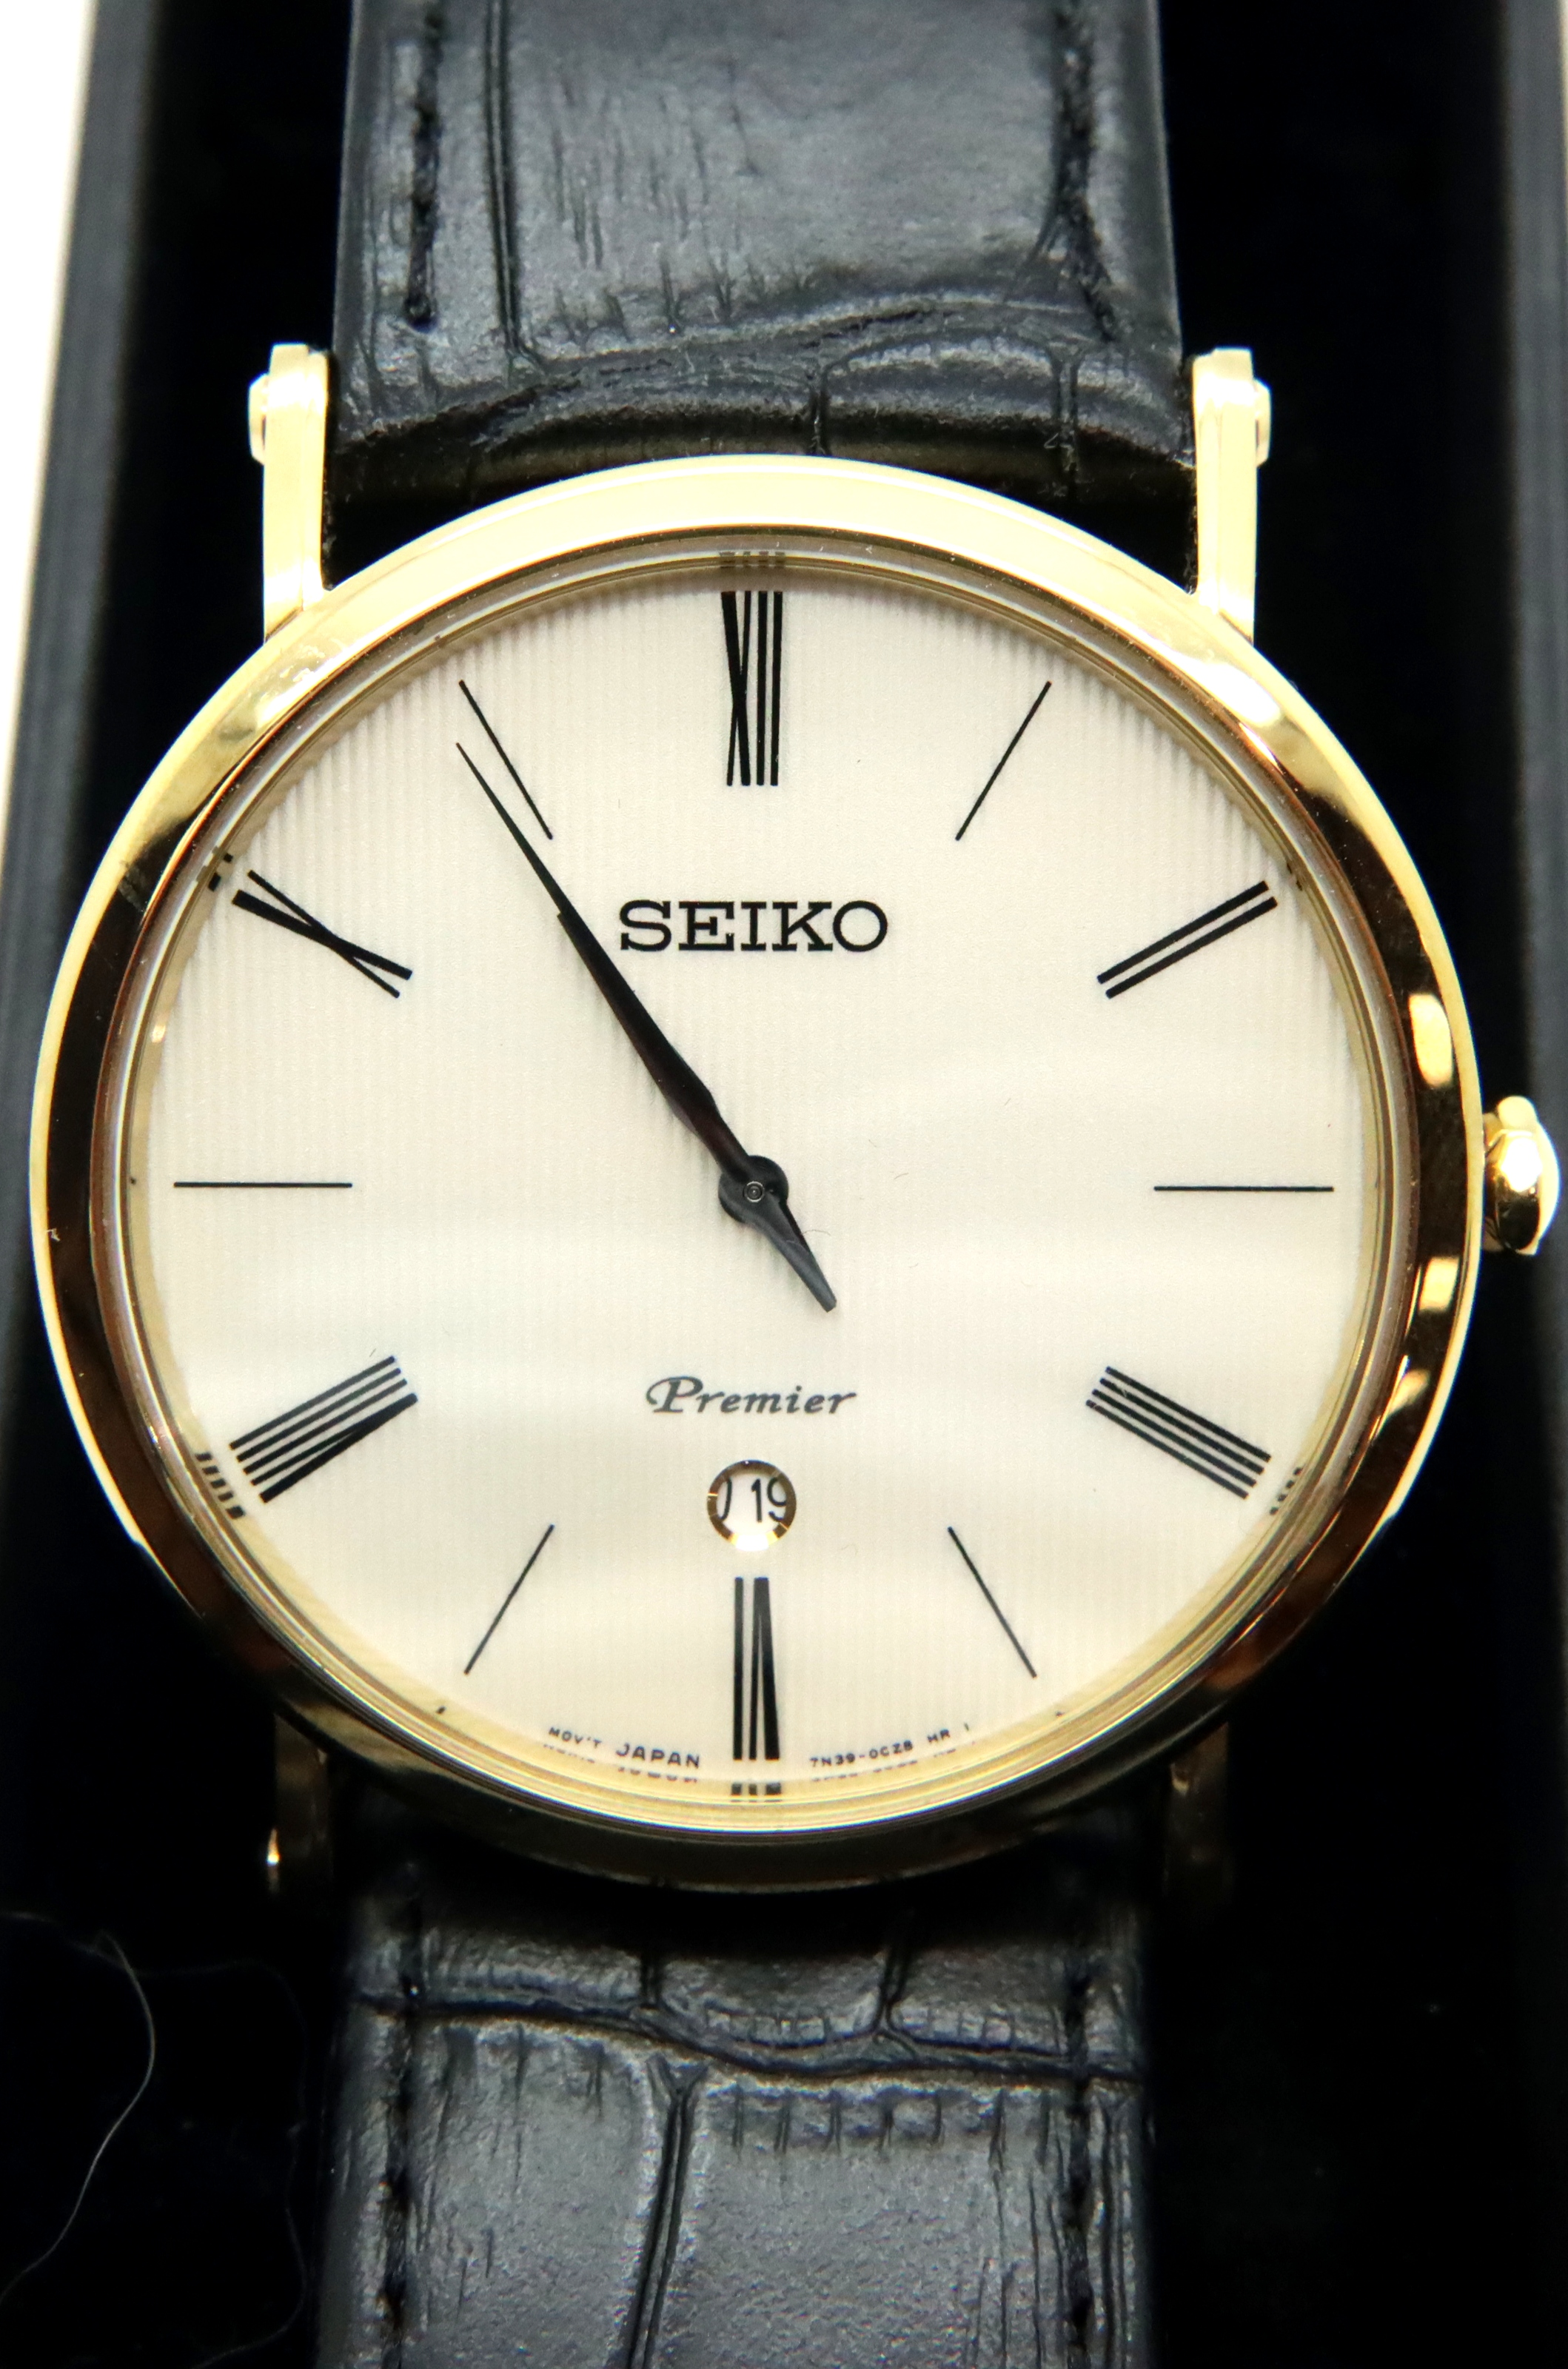 Gents Seiko calendar wristwatch, D: 4 cm. P&P Group 1 (£14+VAT for the first lot and £1+VAT for